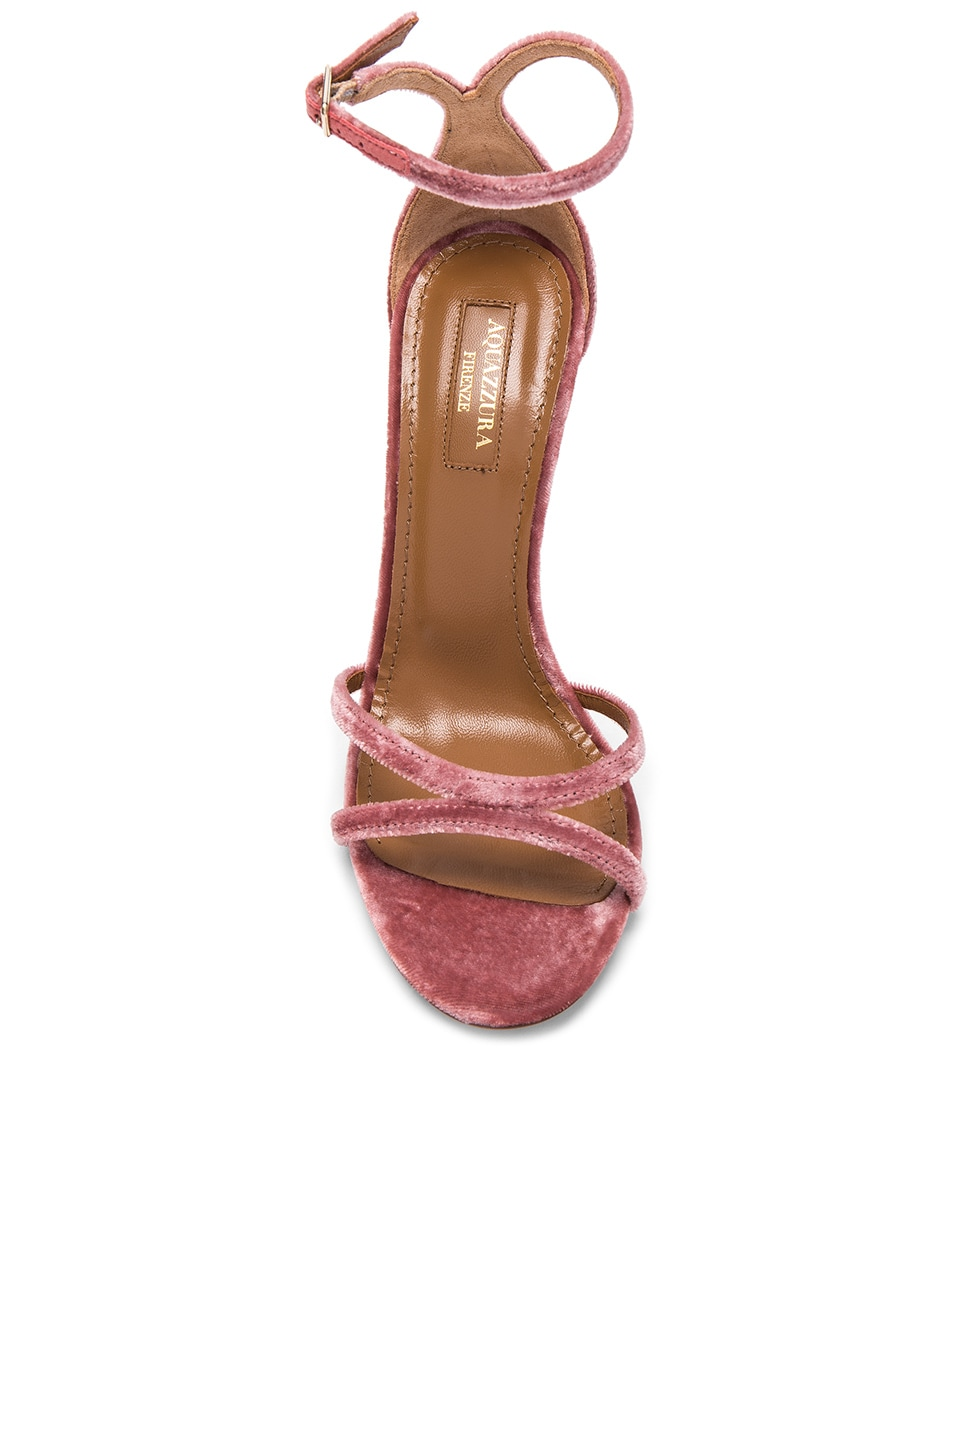 Image 4 of Aquazzura Velvet Purist Sandal Heels in Antique Rose